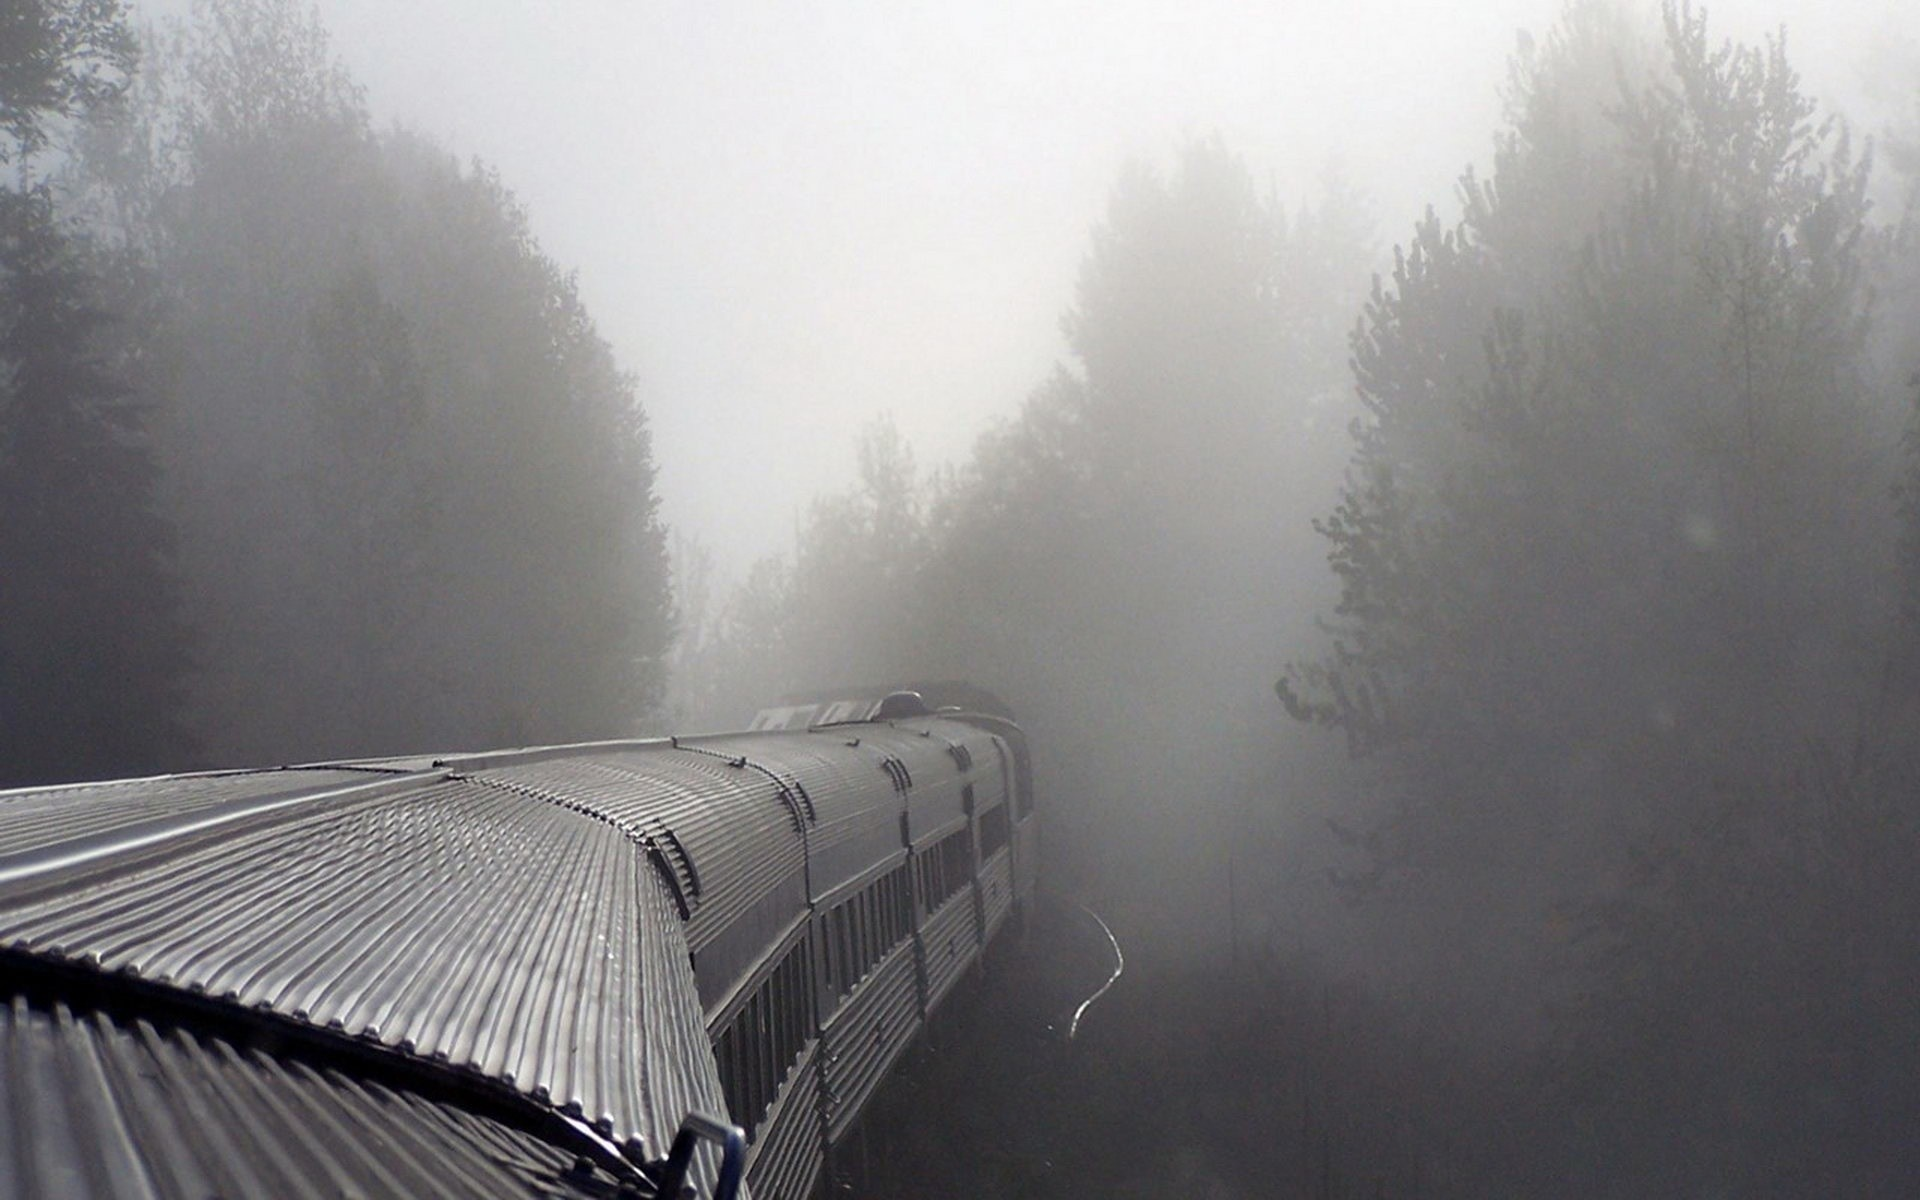 Trees trains fog mist HD Wallpaper